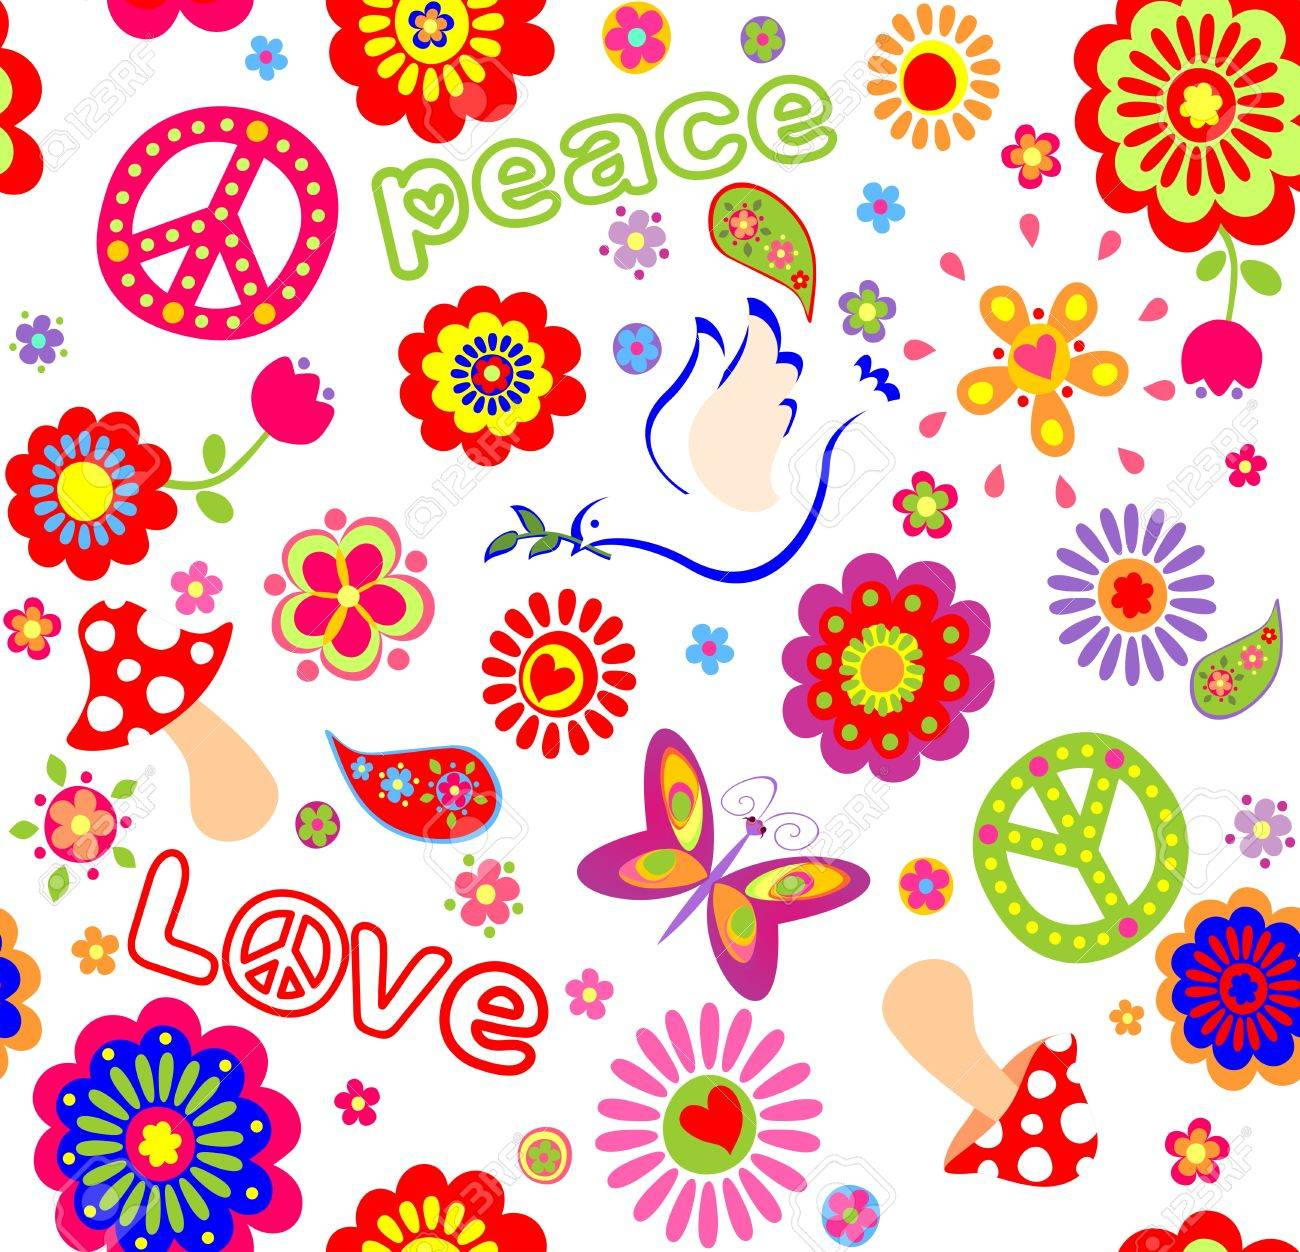 Fiori Hippie.Childish Seamless Wallpaper With Colorful Abstract Flowers Hippie